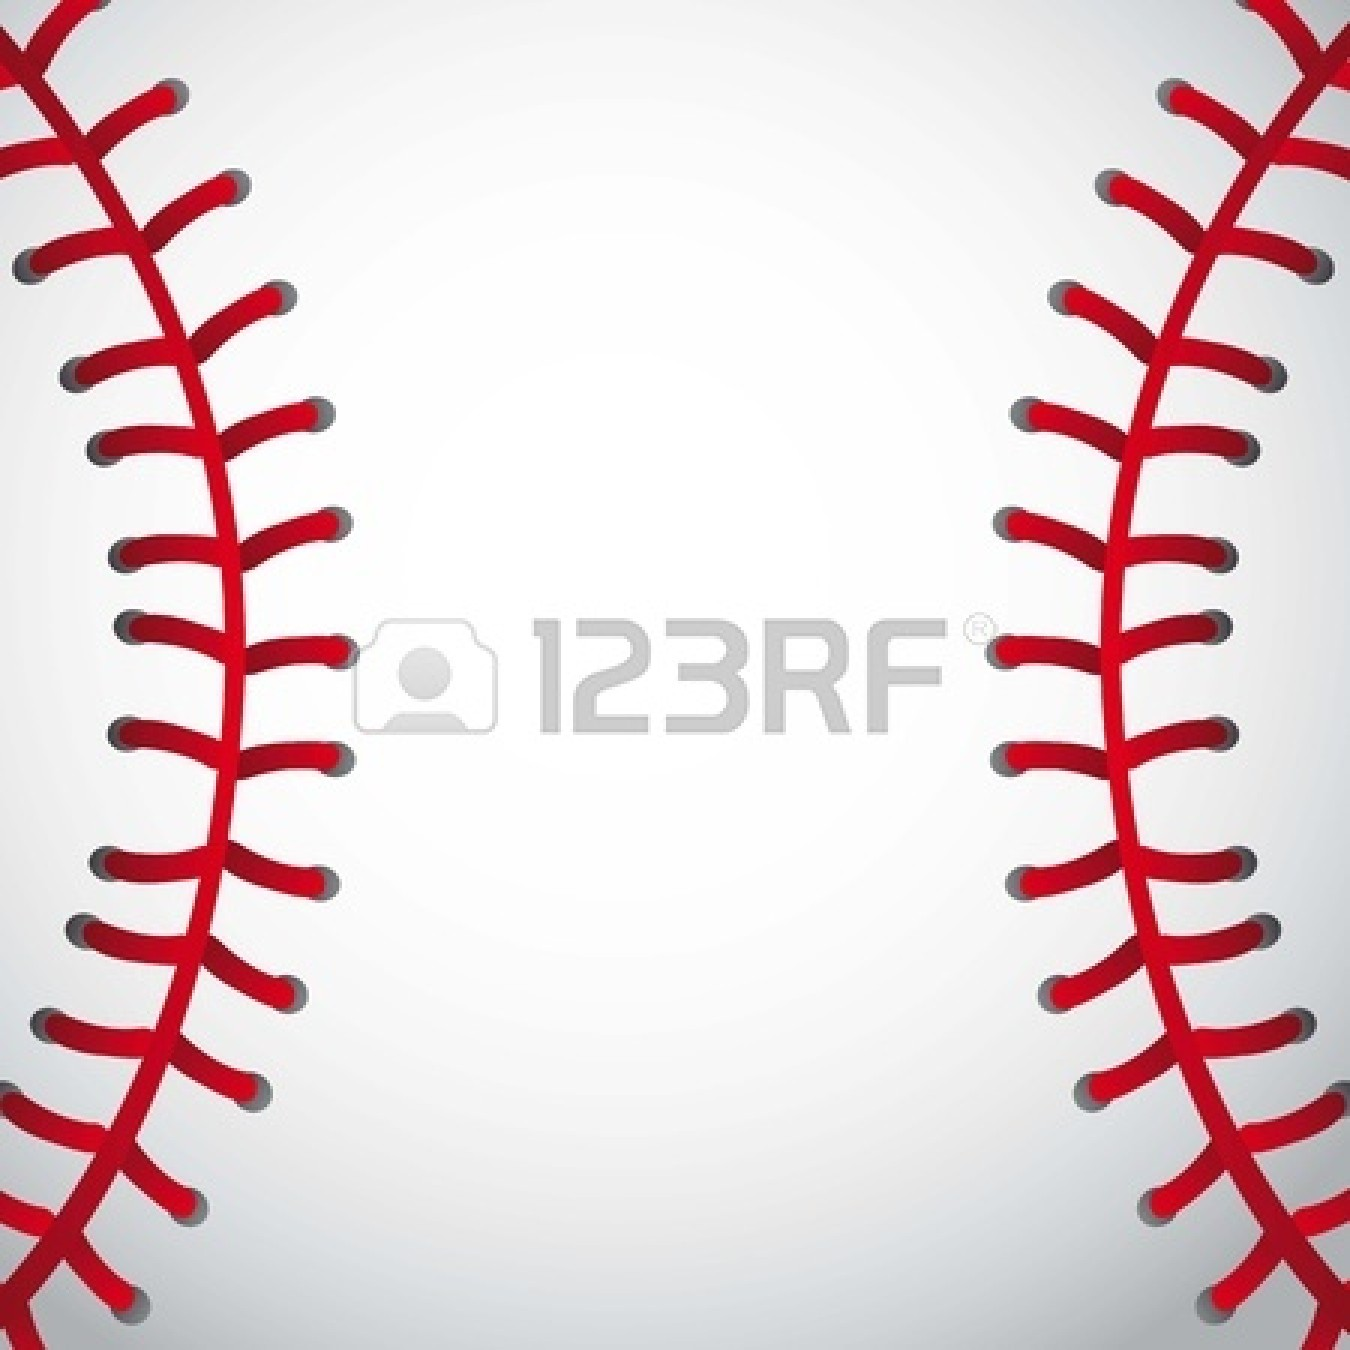 Clipart Backgrounds Softball.